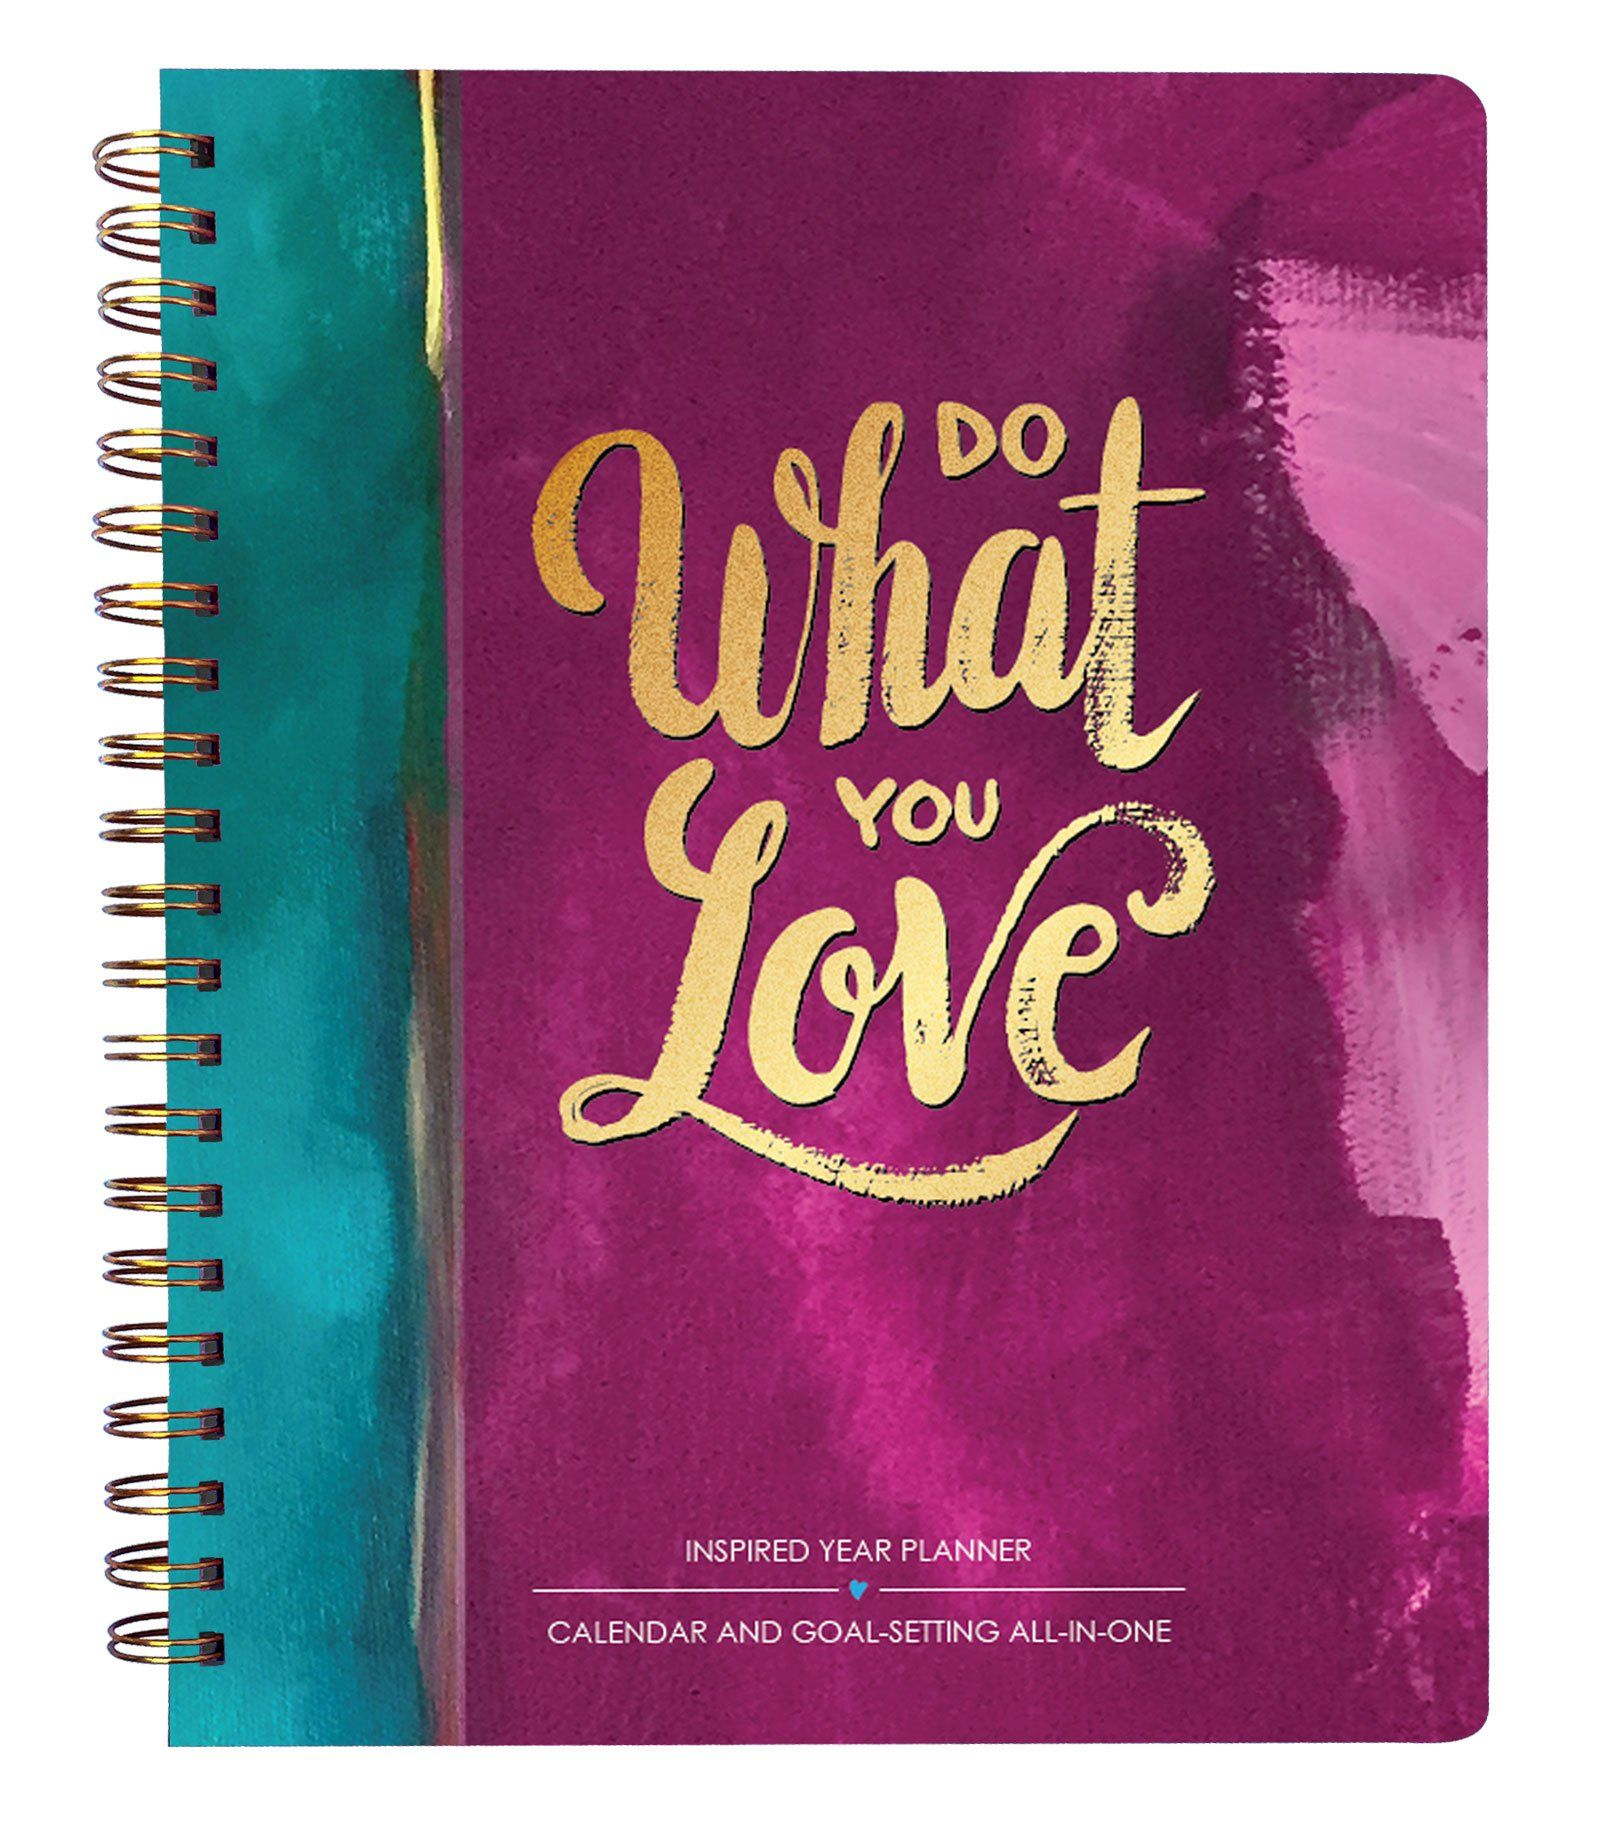 Inspired Year Planner Softcover